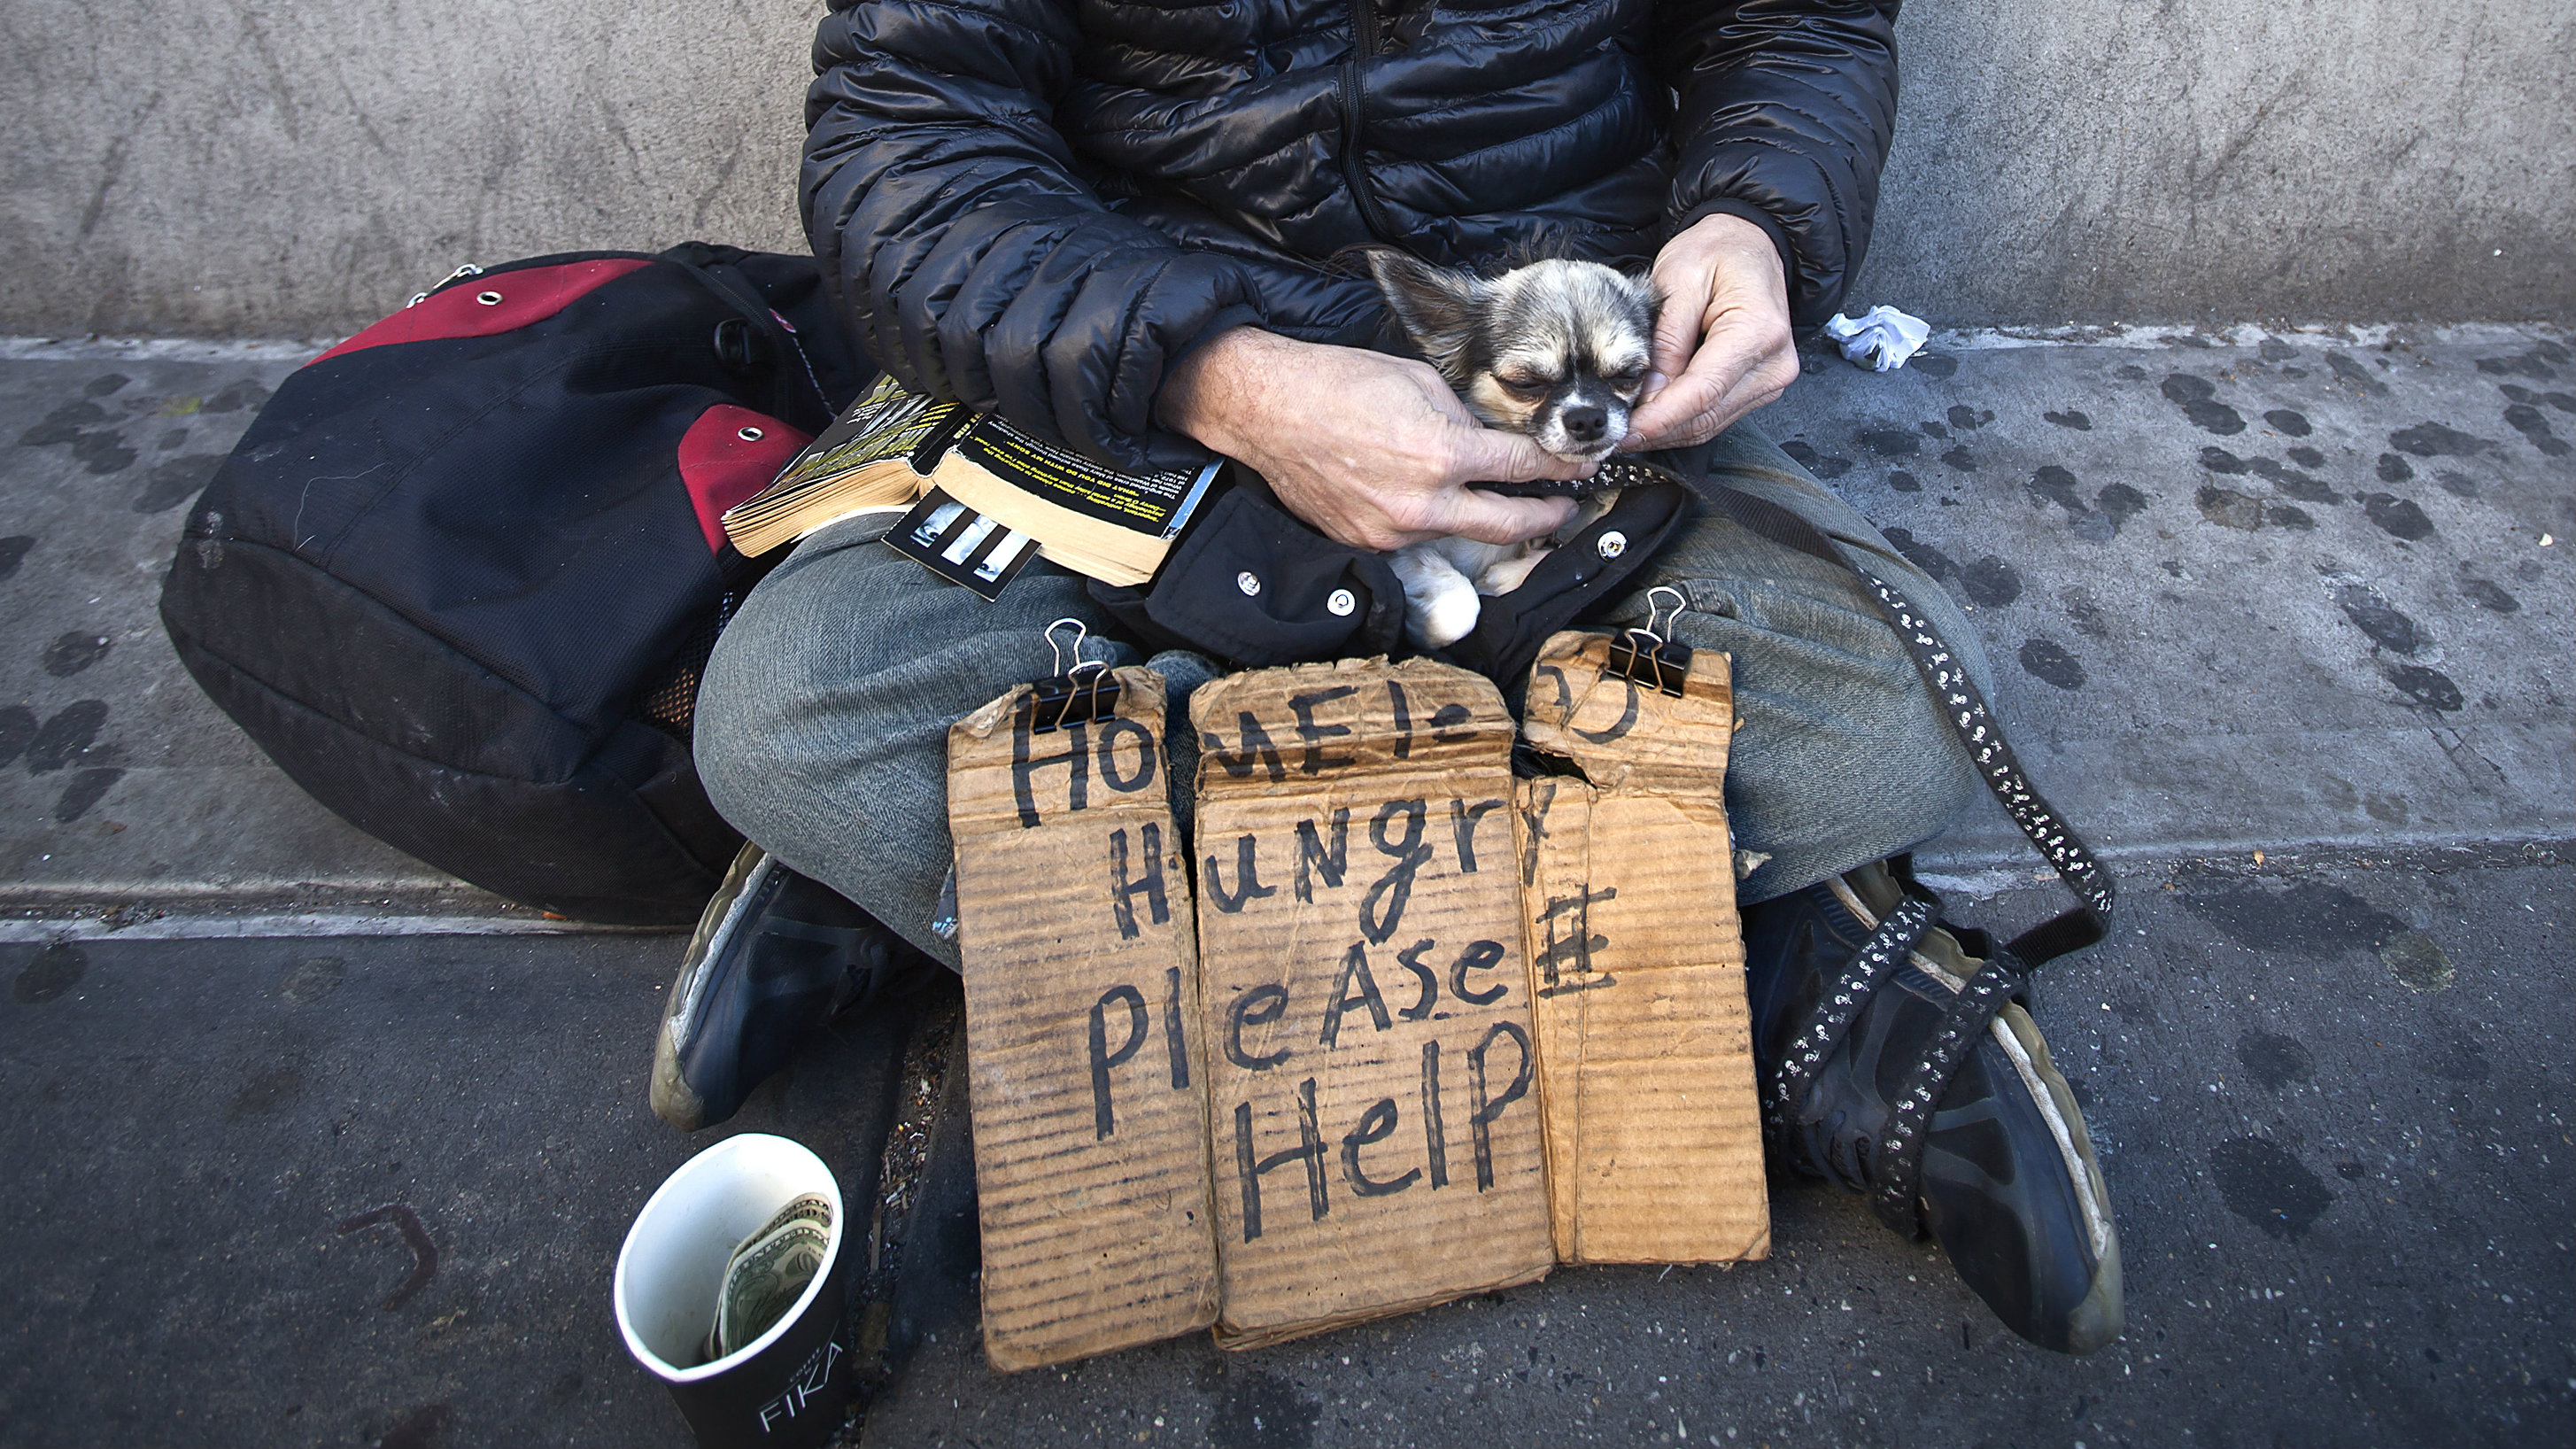 John Stewart caresses his dog Cuddles as he sits on 14th Street with a sign asking for help in New York October 27, 2014. Stewart has been homeless for 2.5 years and can't find a bed in a shelter because he refuses to give up his dog who he has had for 20 years. REUTERS/Carlo Allegri (UNITED STATES - Tags: SOCIETY ANIMALS)